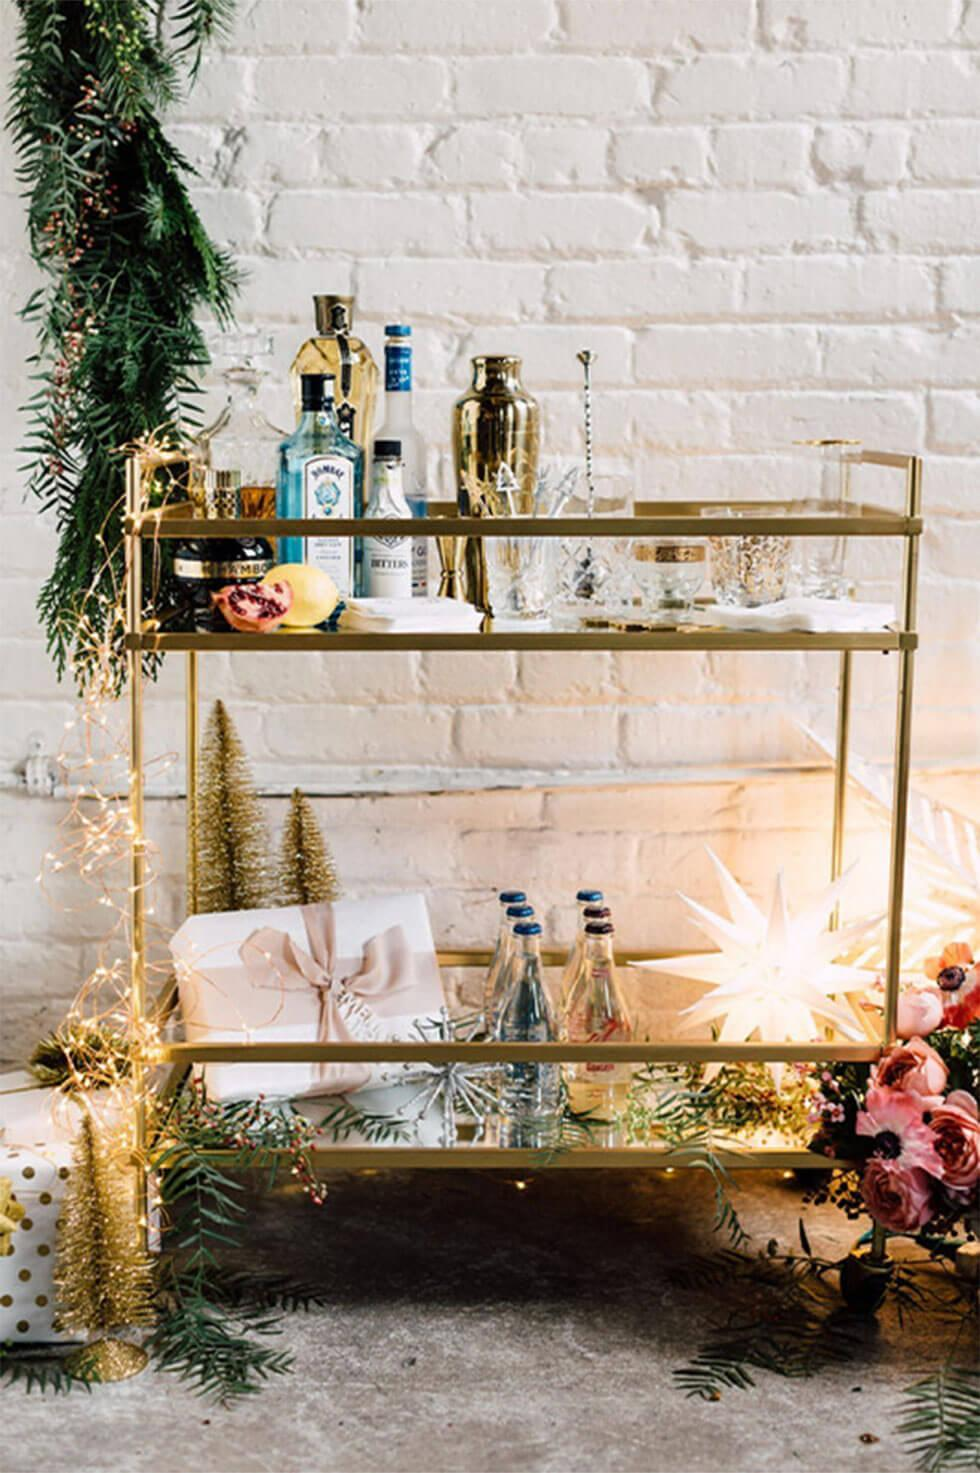 Holiday bar cart decorated for a fancy Christmas party.